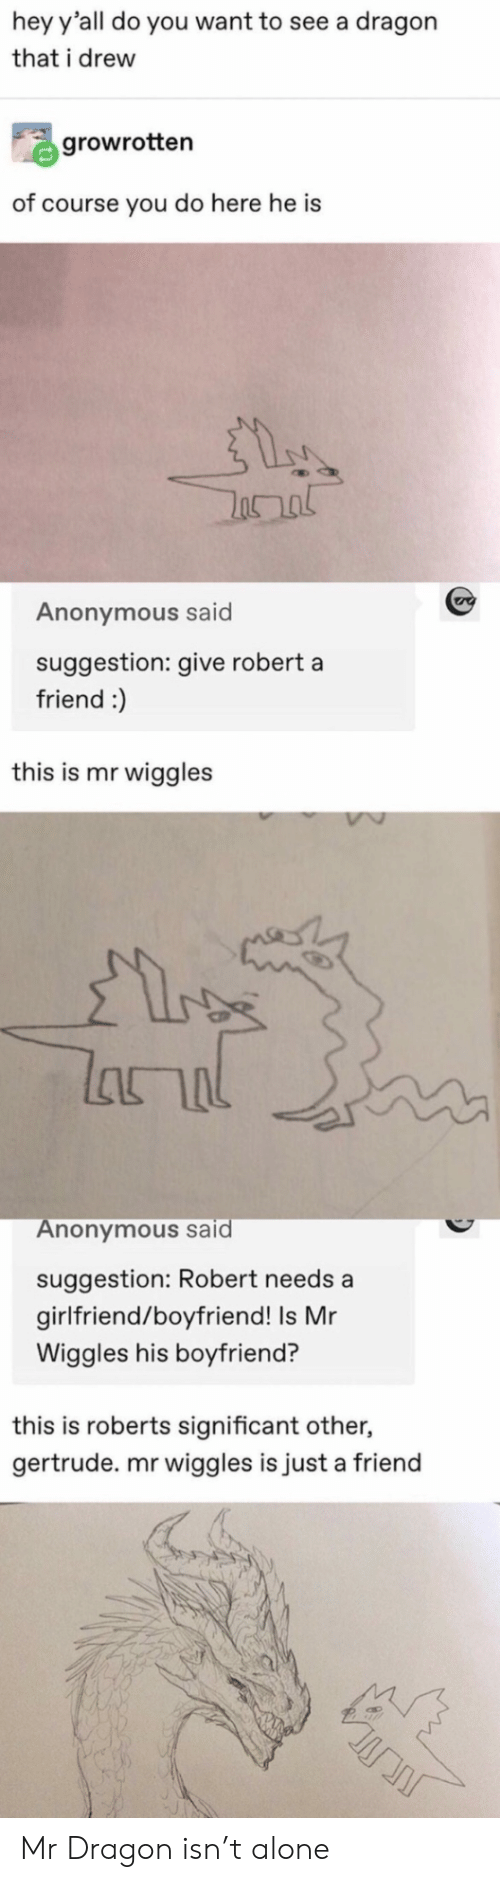 just a friend: hey y'all do you want to see a dragon  that i drew  growrotten  of course you do here he is  Anonymous said  suggestion: give robert a  friend :)  this is mr wiggles  lhור  Anonymous said  suggestion: Robert needs a  girlfriend/boyfriend! Is Mr  Wiggles his boyfriend?  this is roberts significant other,  gertrude. mr wiggles is just a friend Mr Dragon isn't alone